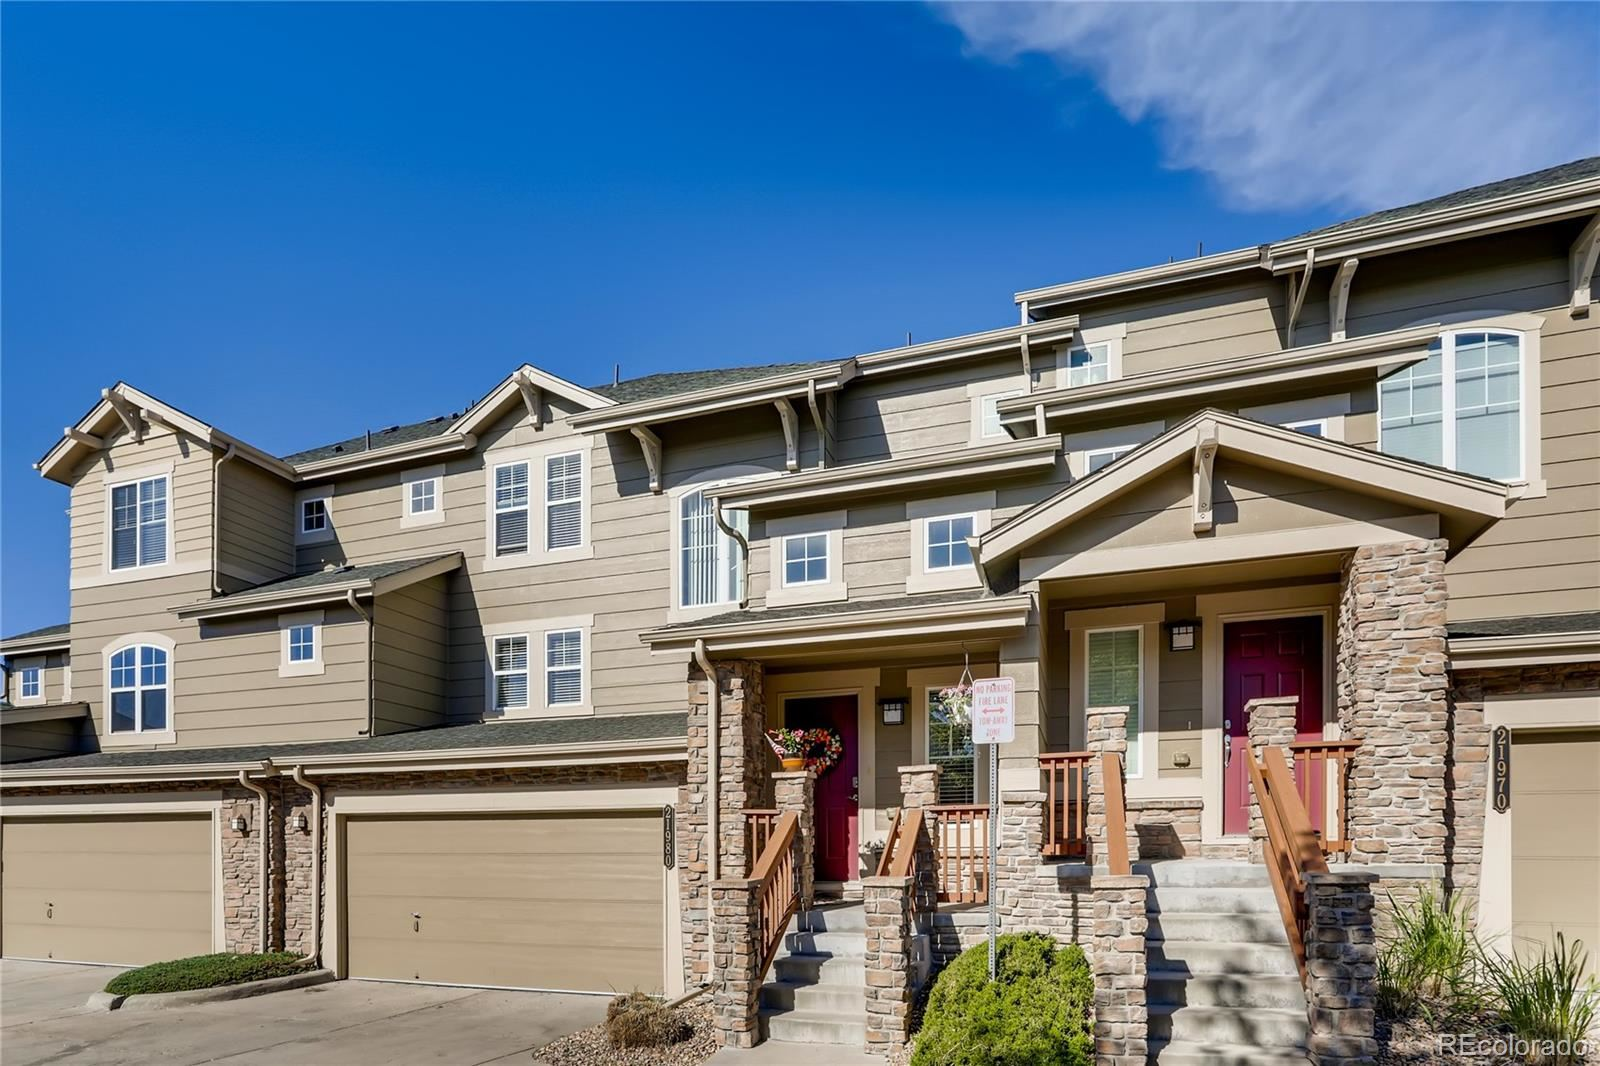 21980 E Irish Drive, Aurora, CO 80016 - #: 5212002